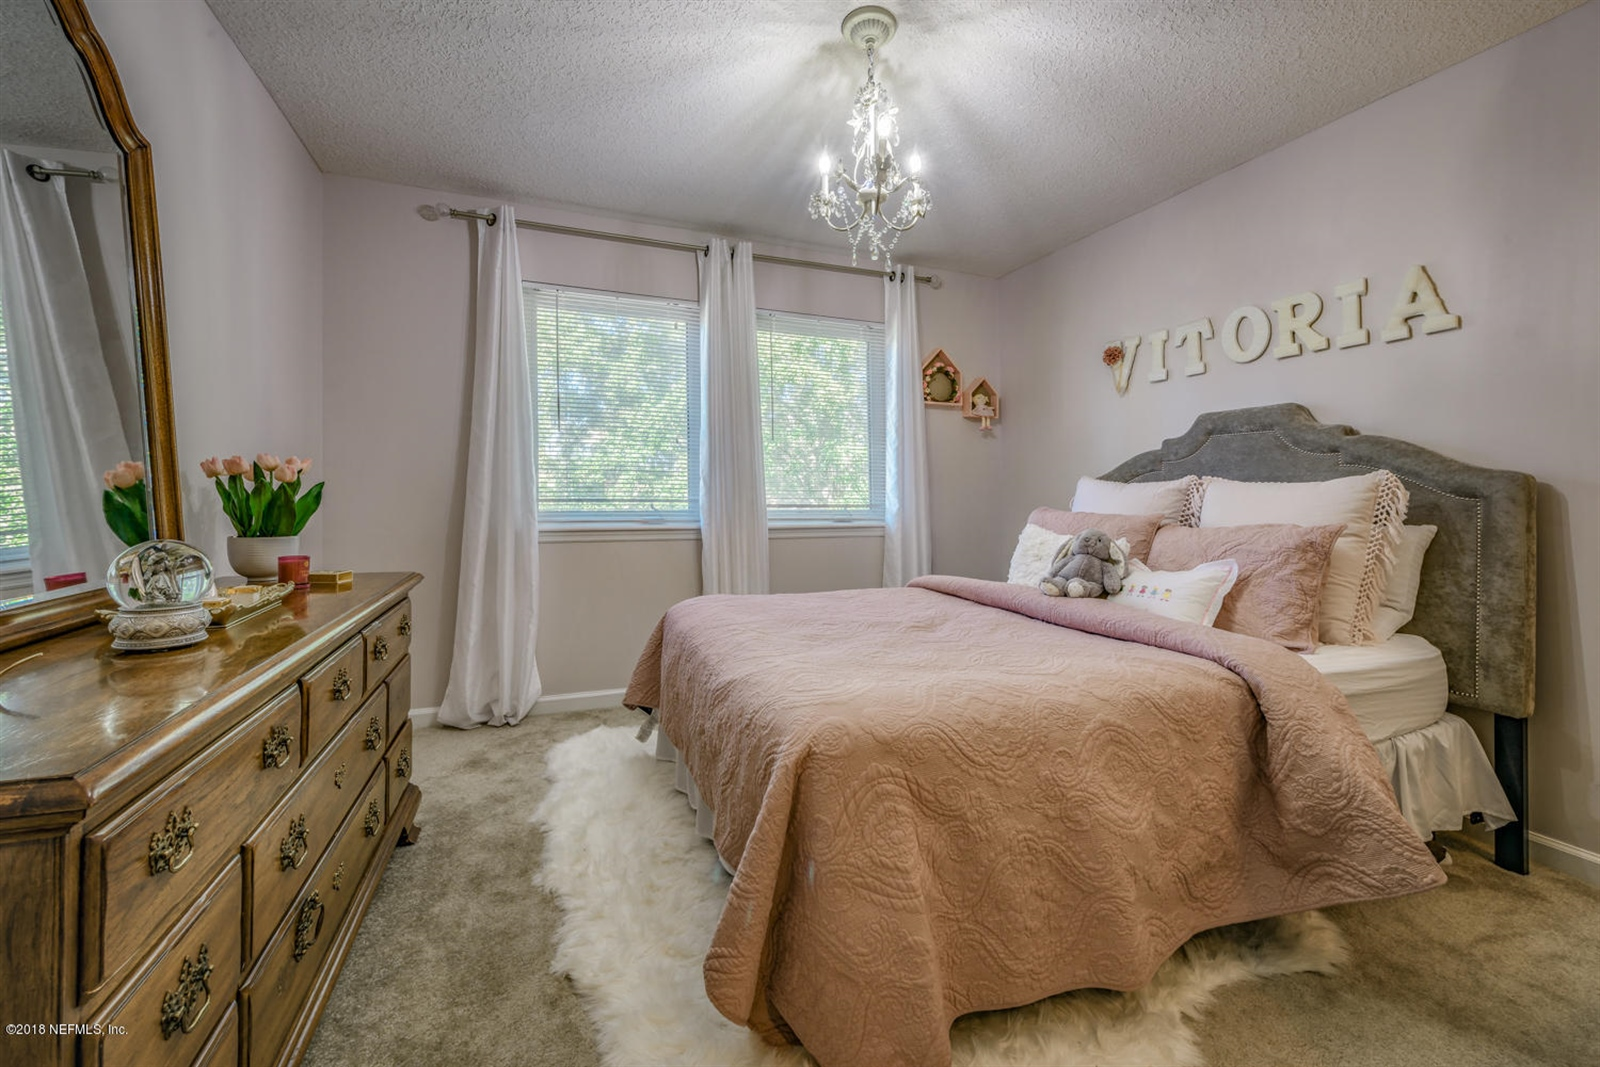 Real Estate Photography - 1404 4th Ave N, Unit D, Jacksonville Beach, FL, 32250 - Location 16